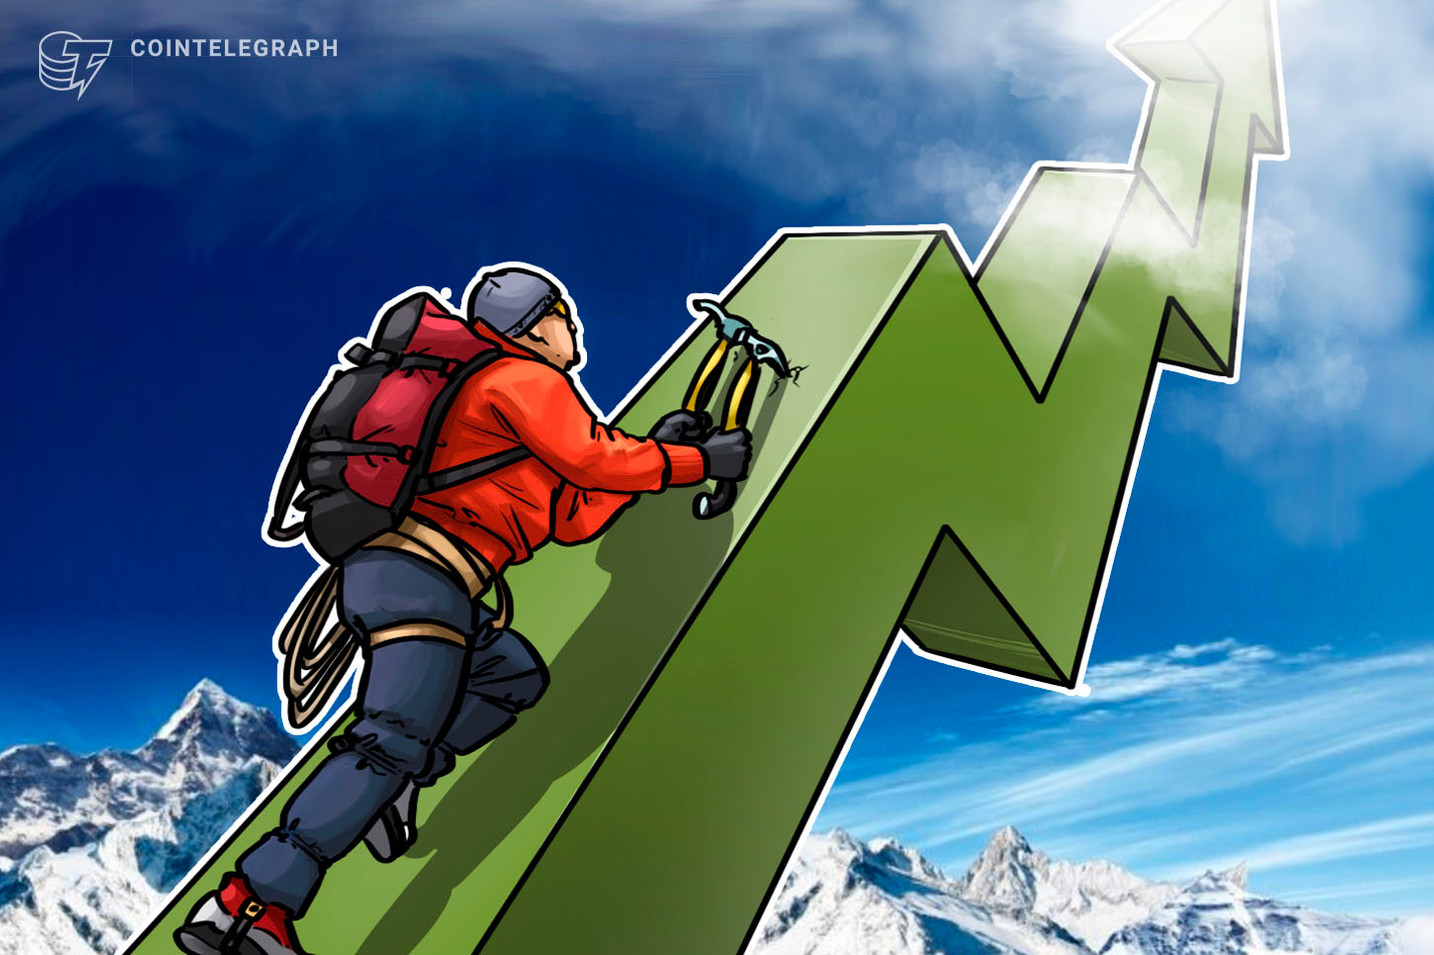 Bitcoin Breaks $3,600 Price Point, Some Top Cryptos See Double-Digit Gains